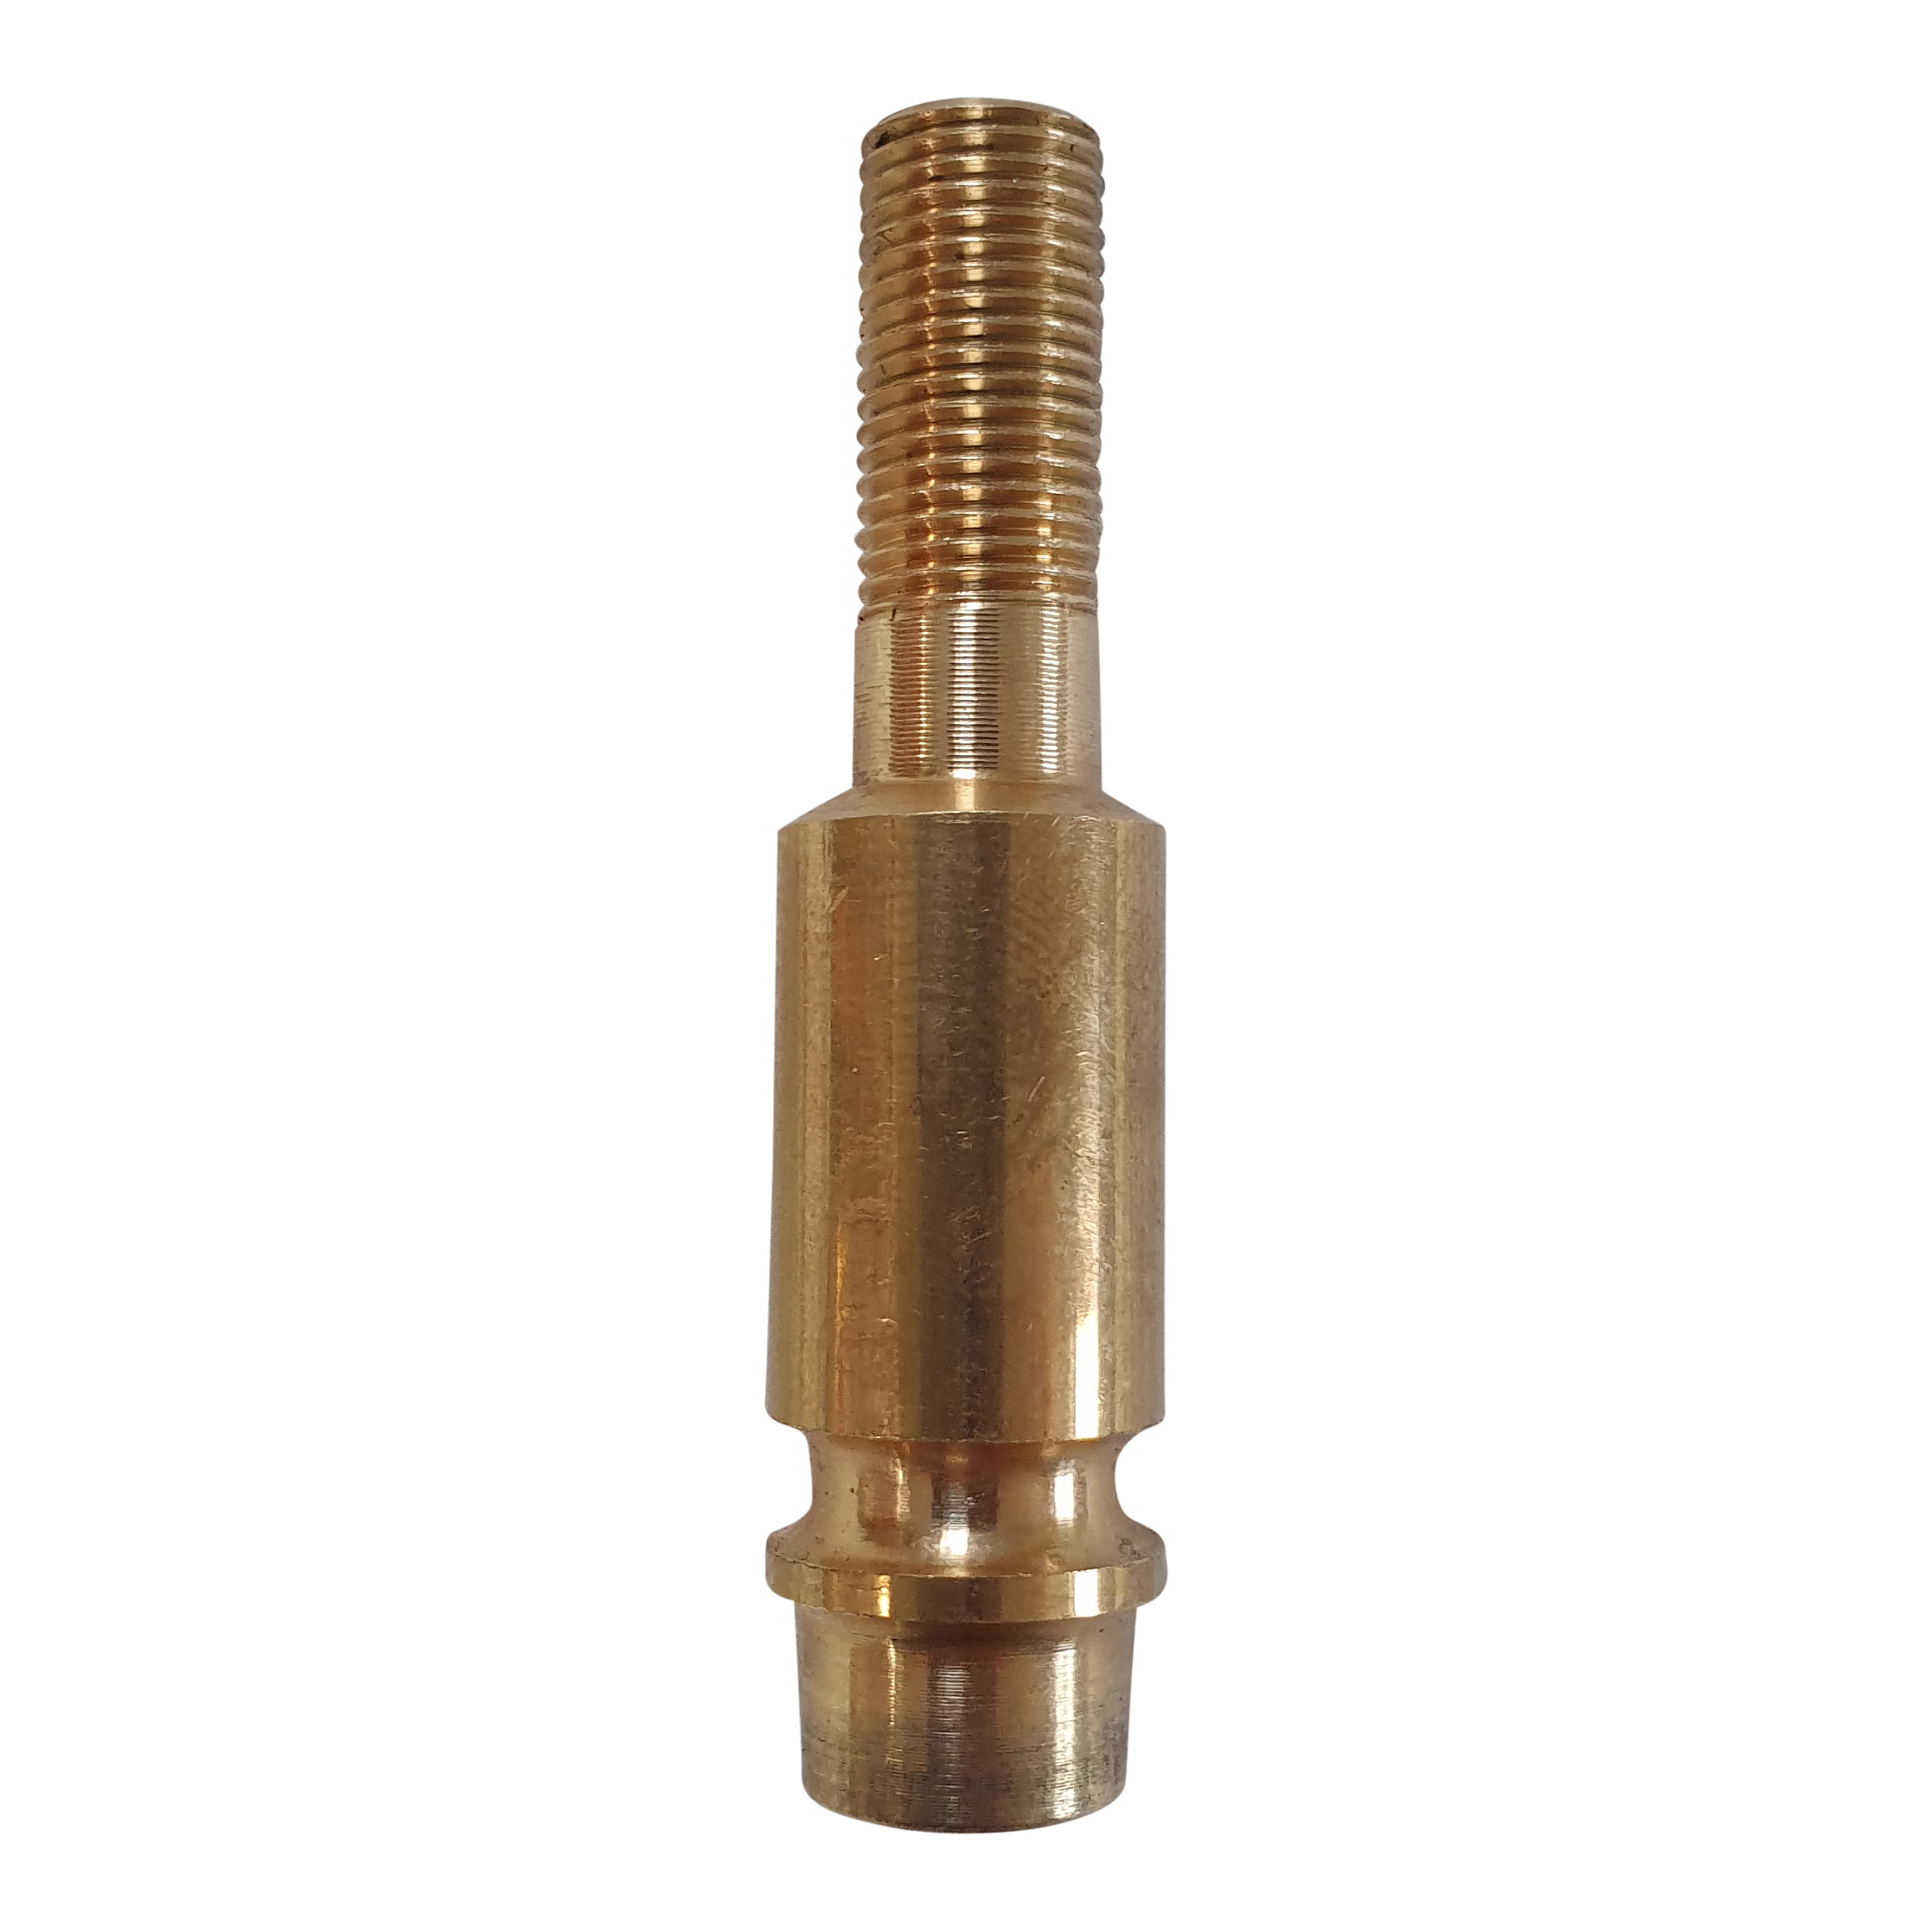 Adapter for tire valve